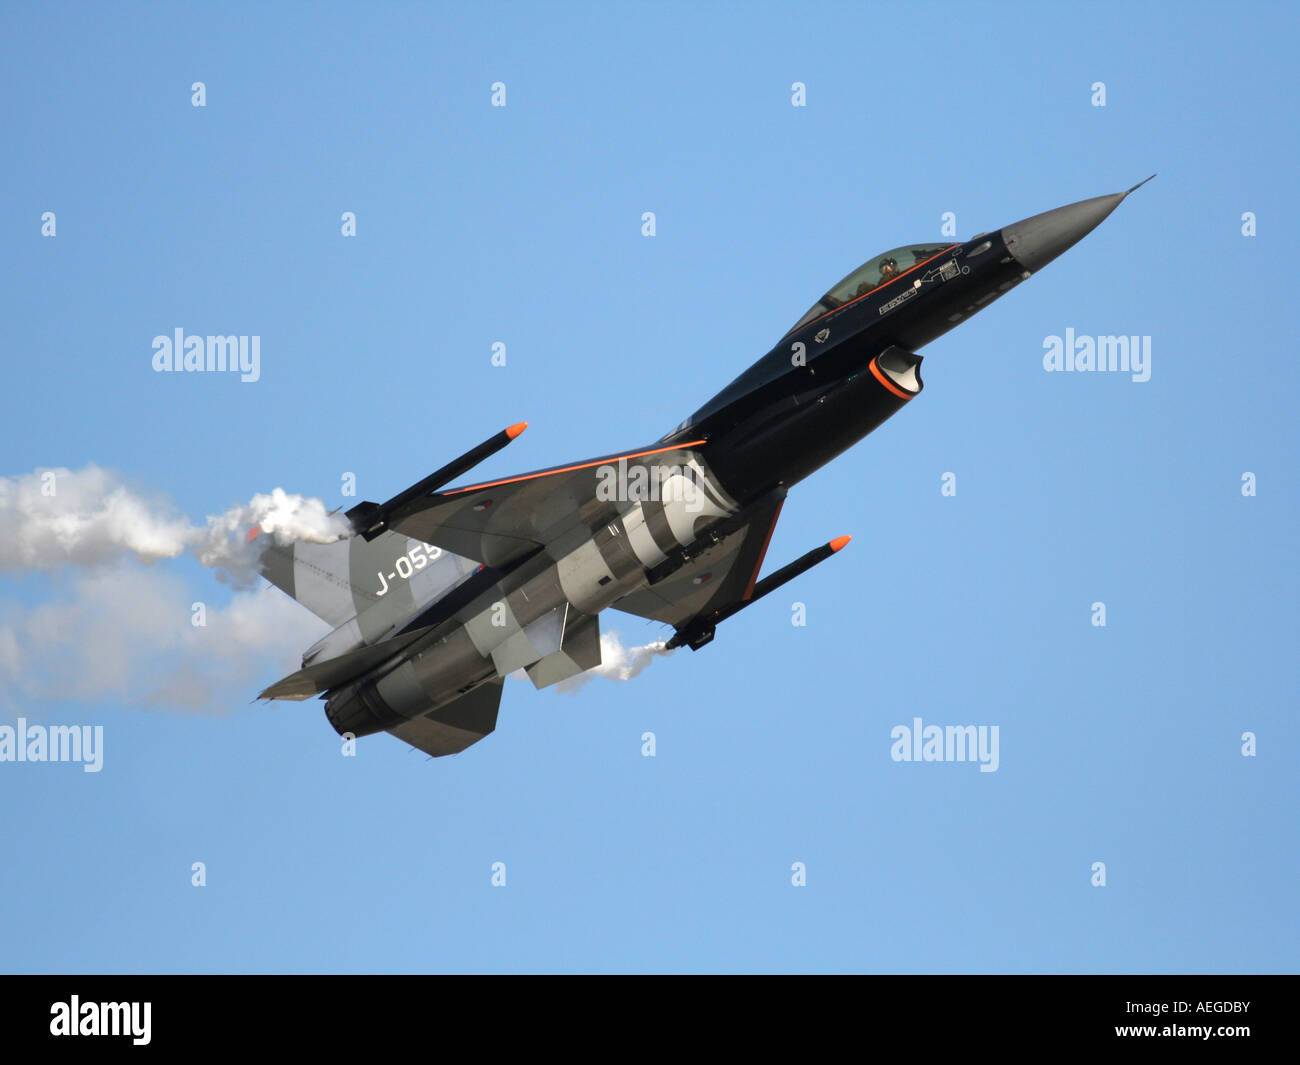 Royal Netherlands Air Force F-16 jet fighter flying nose up during an air display Stock Photo